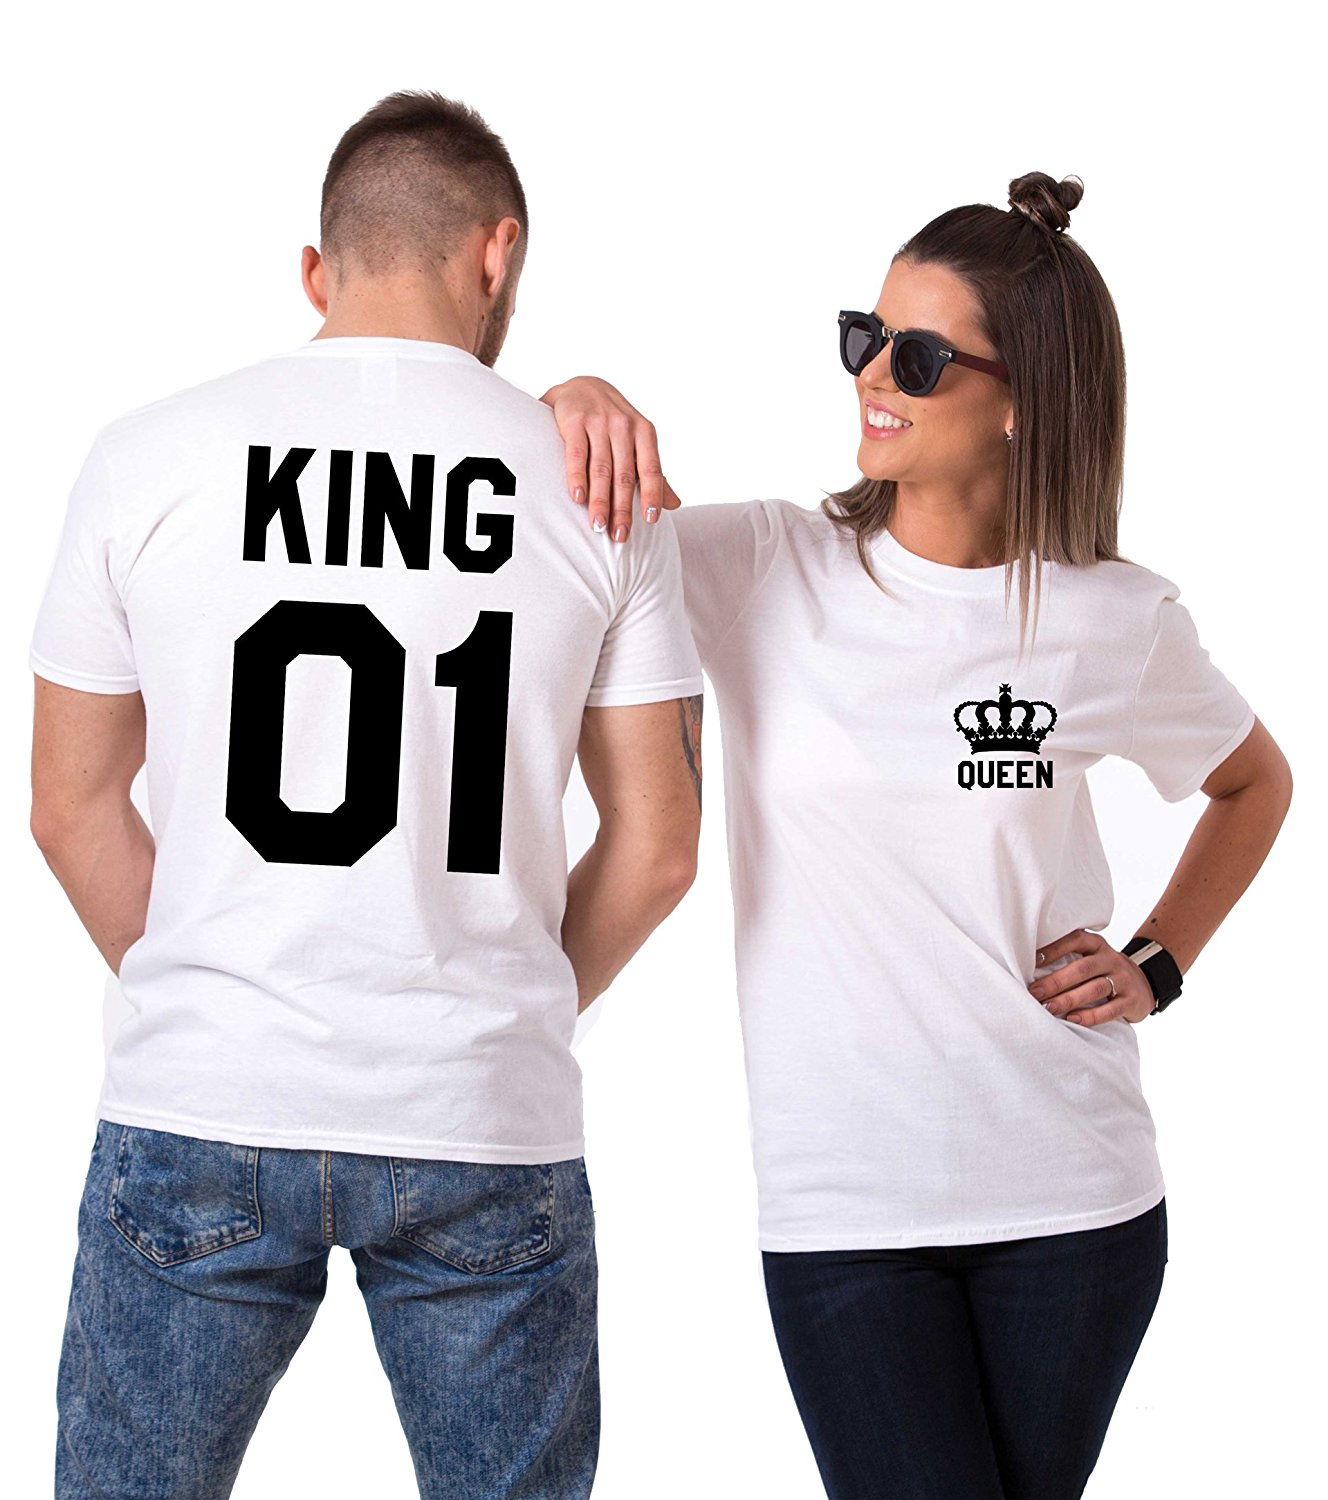 4363f1eb68 Get Quotations · Couple's Shop King Queen Couples T-Shirts Crown Set  Valentine's Day Gift His Hers Cotton